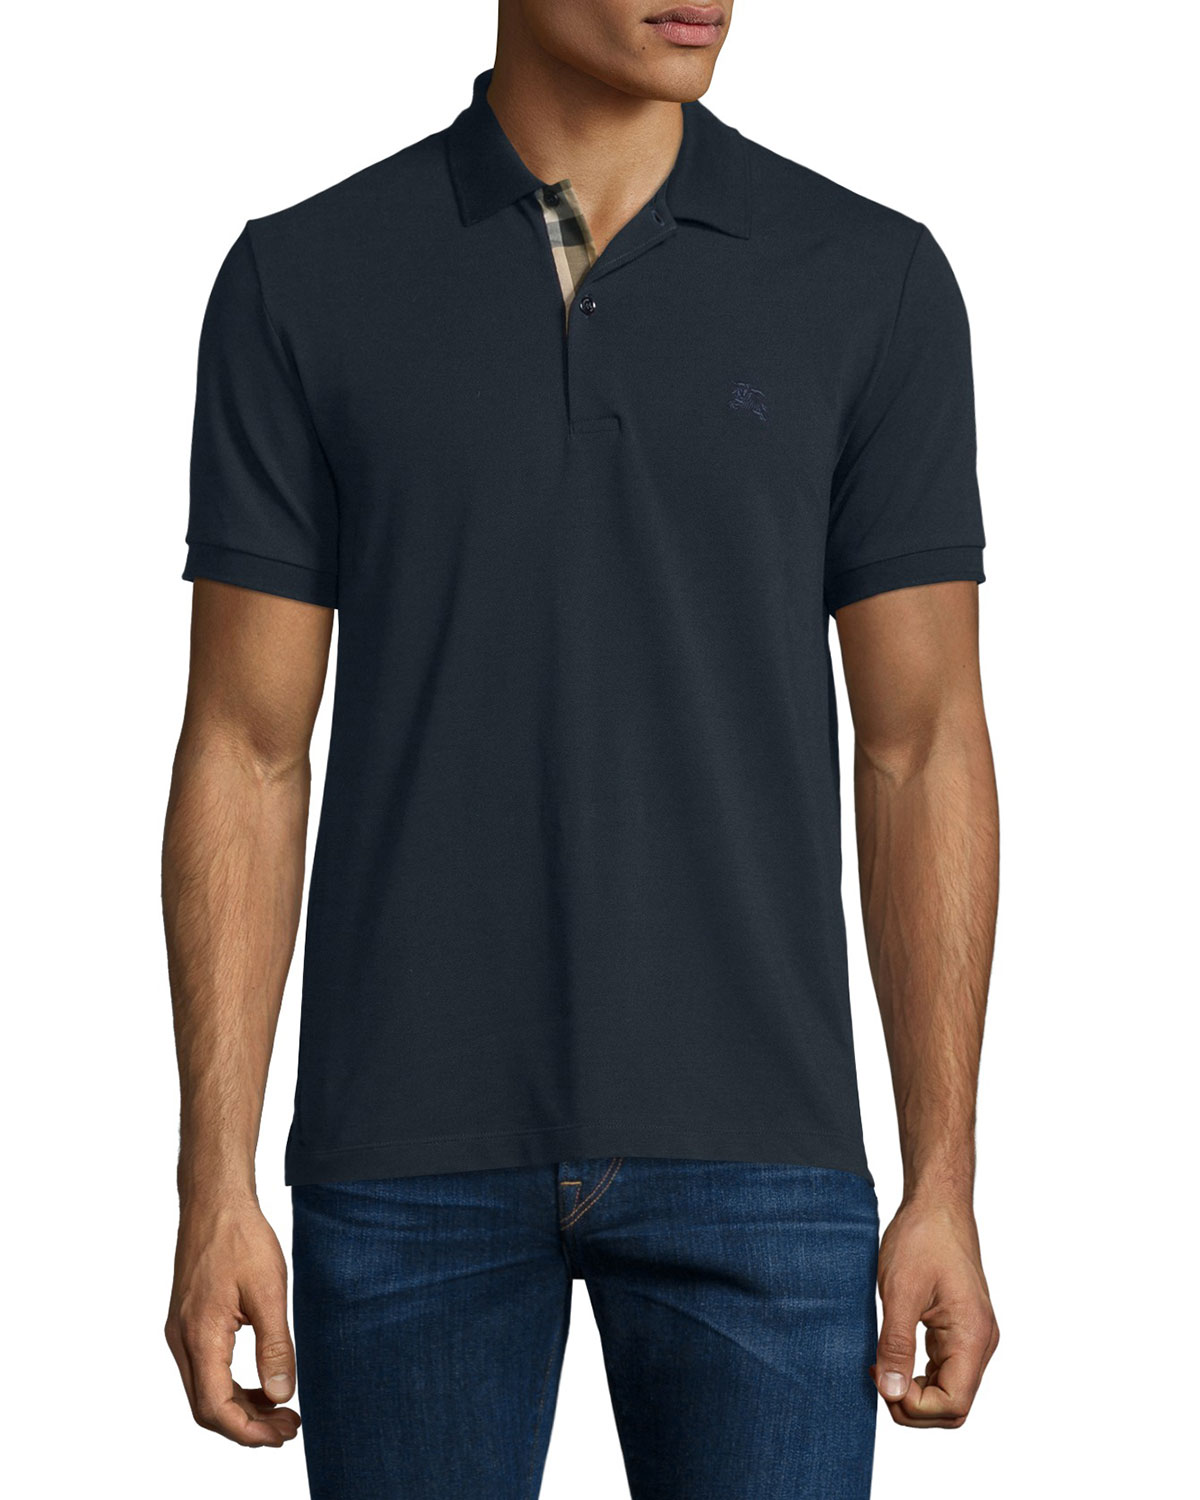 Short-Sleeve Oxford Polo Shirt, Dark Navy